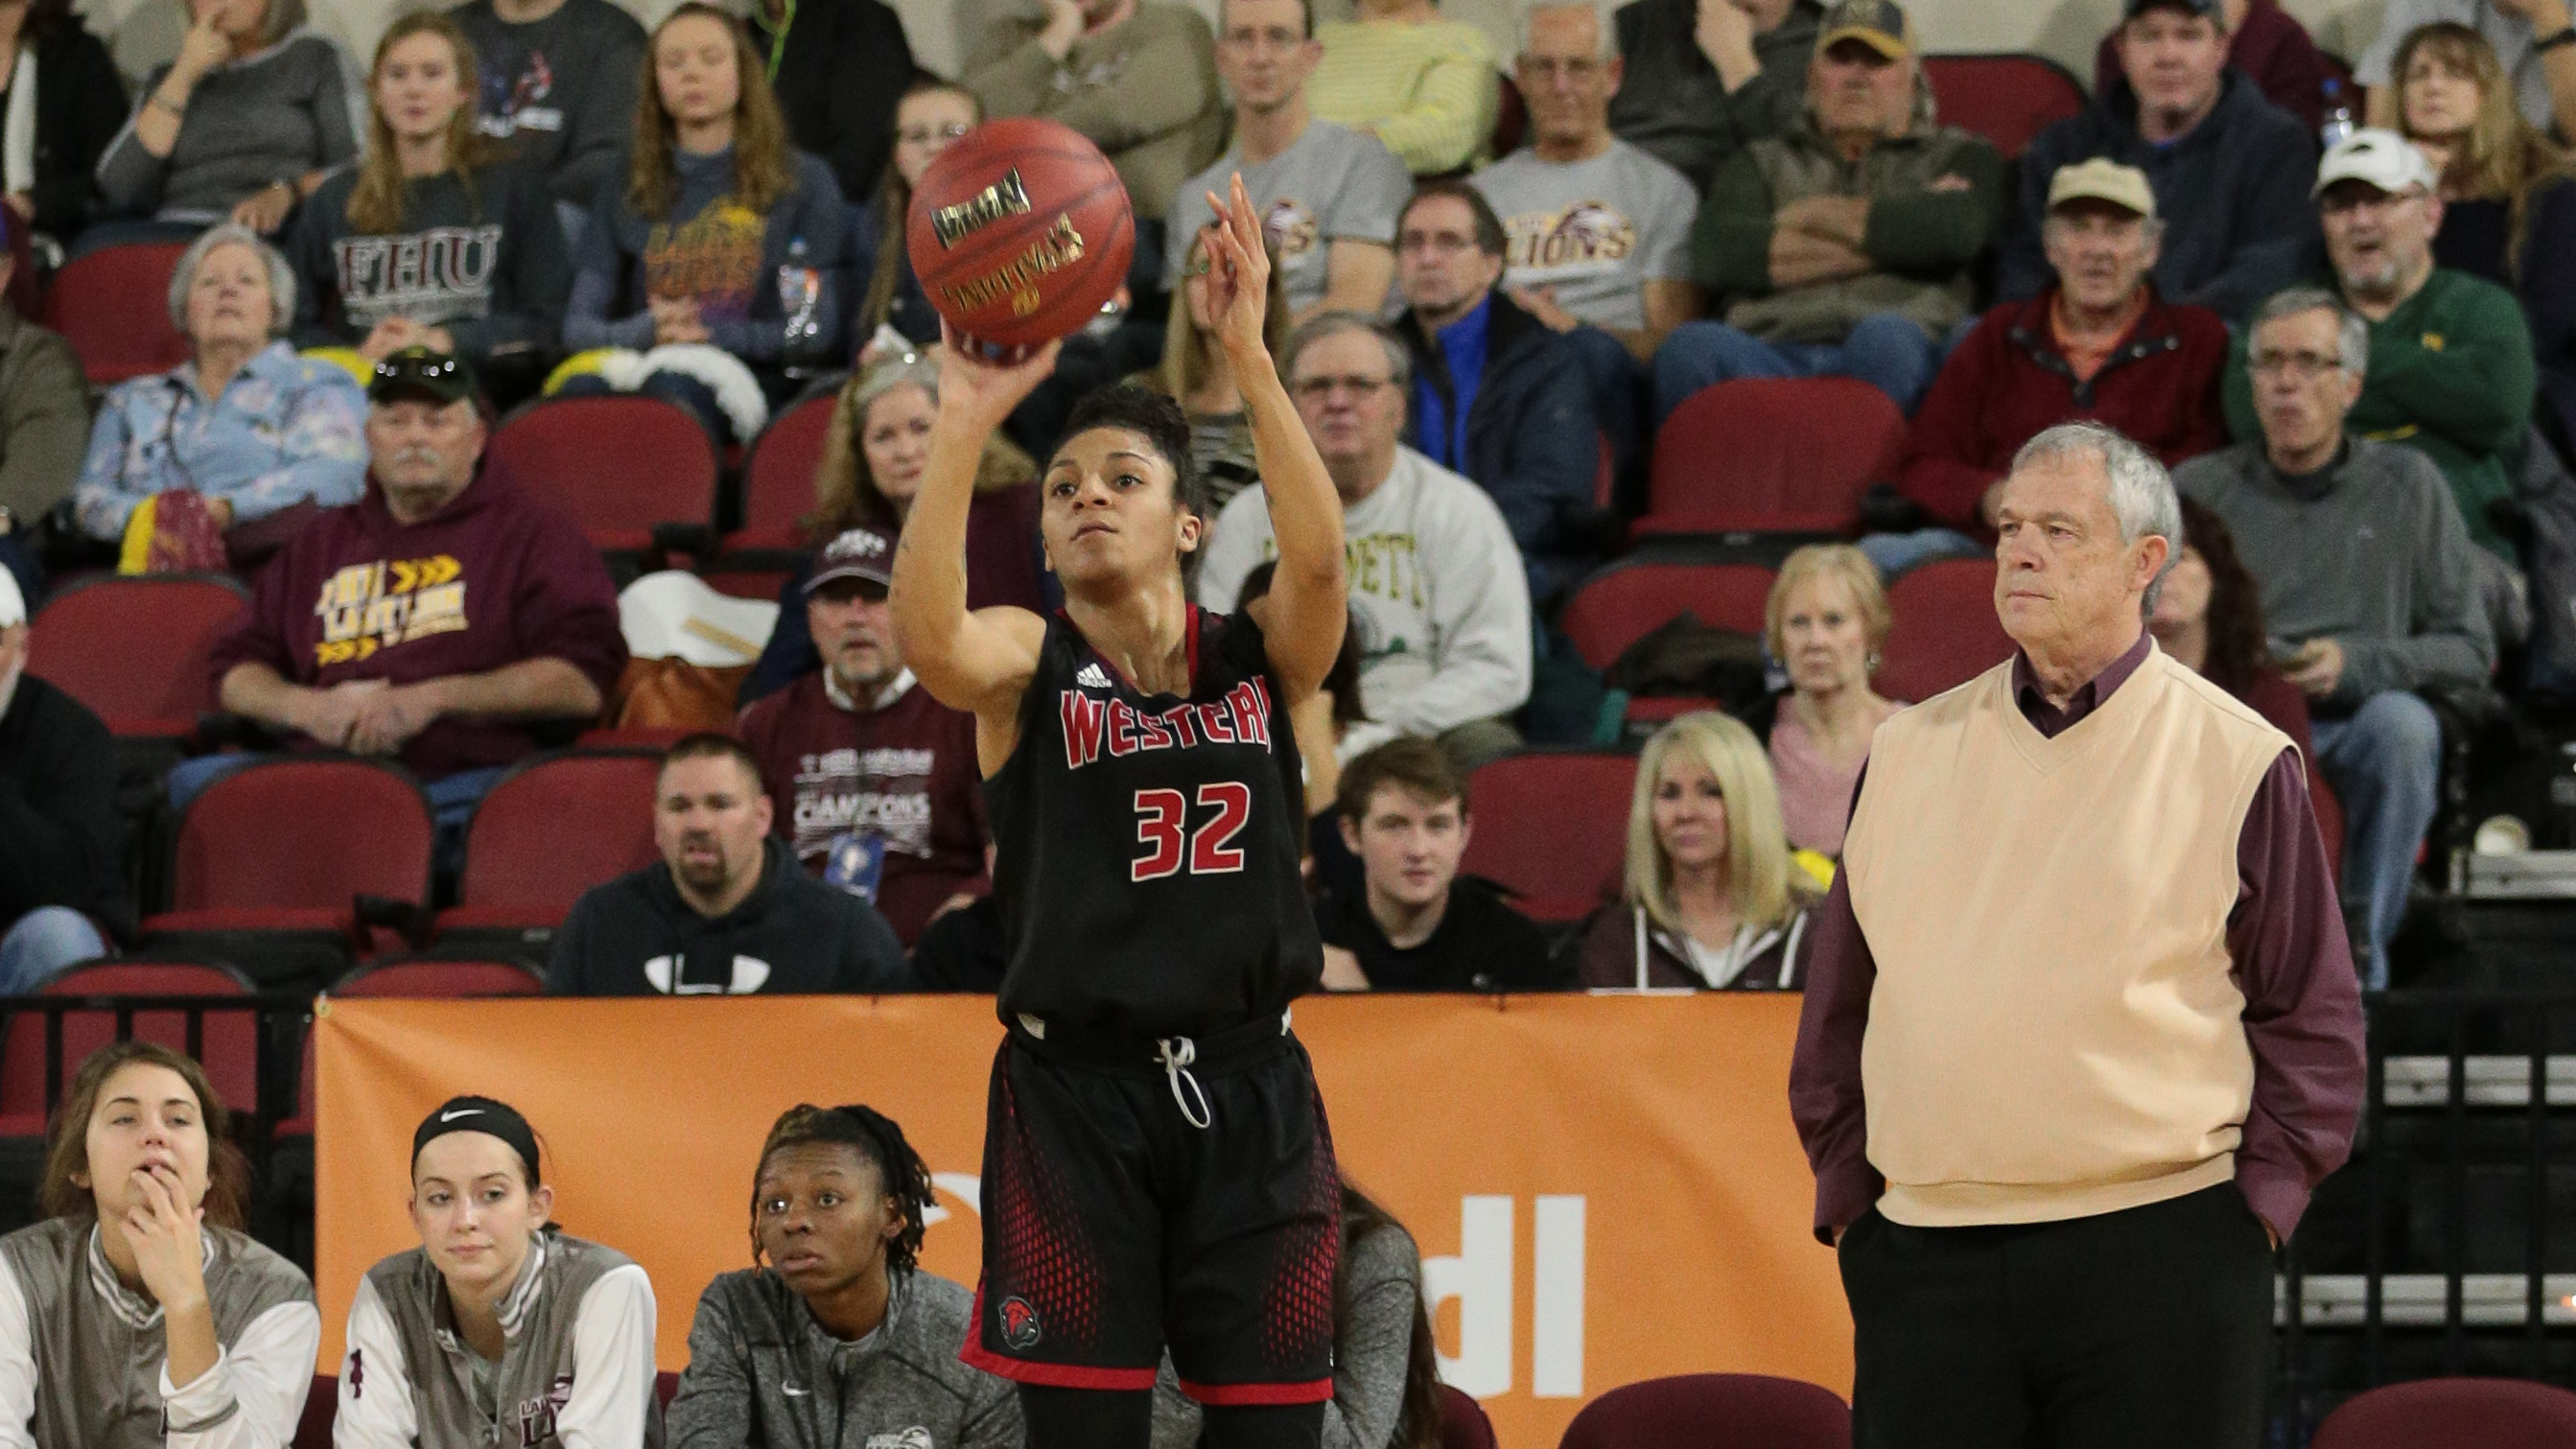 2019 NAIA DI Women's Basketball All-America Teams Announced